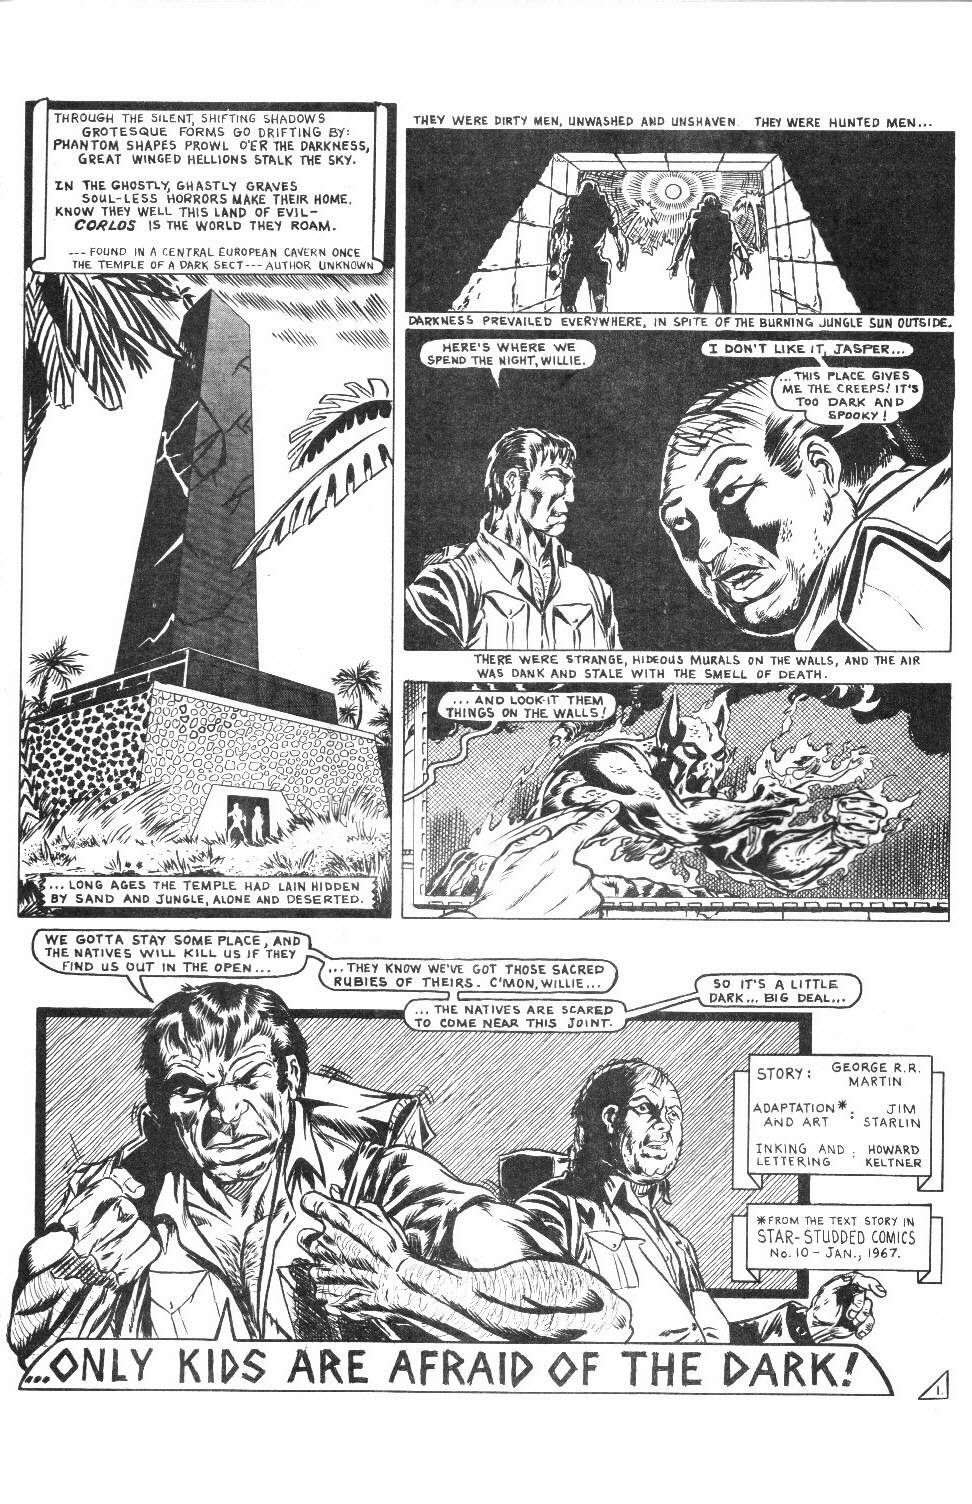 Read online Dr. Weird Special comic -  Issue # Full - 19